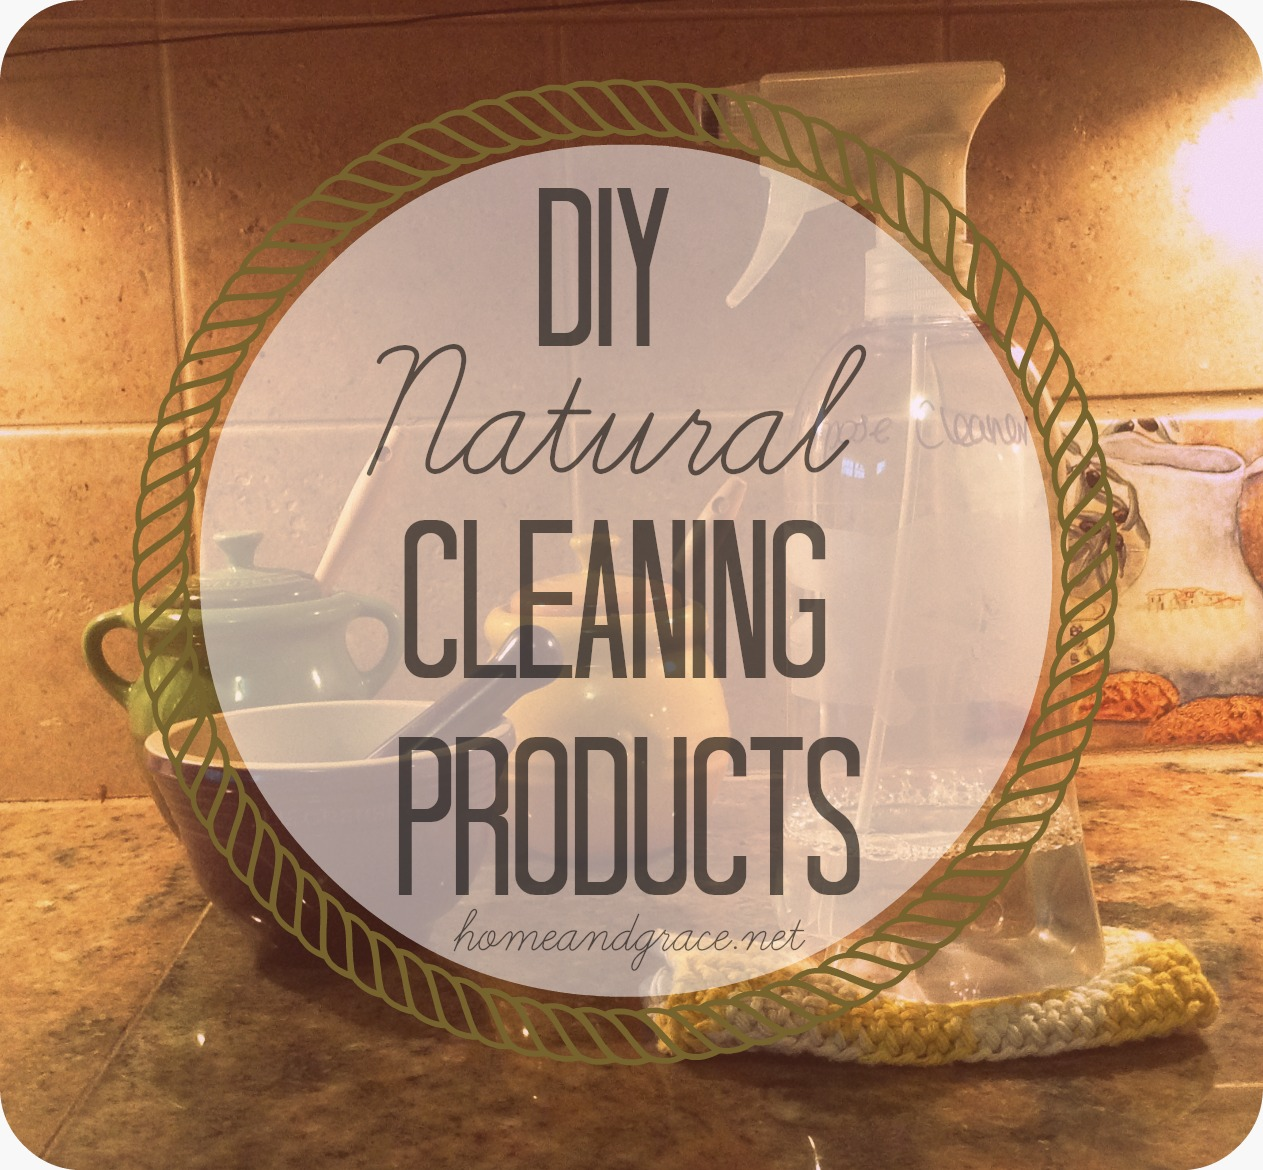 diy natural cleaning products. Black Bedroom Furniture Sets. Home Design Ideas